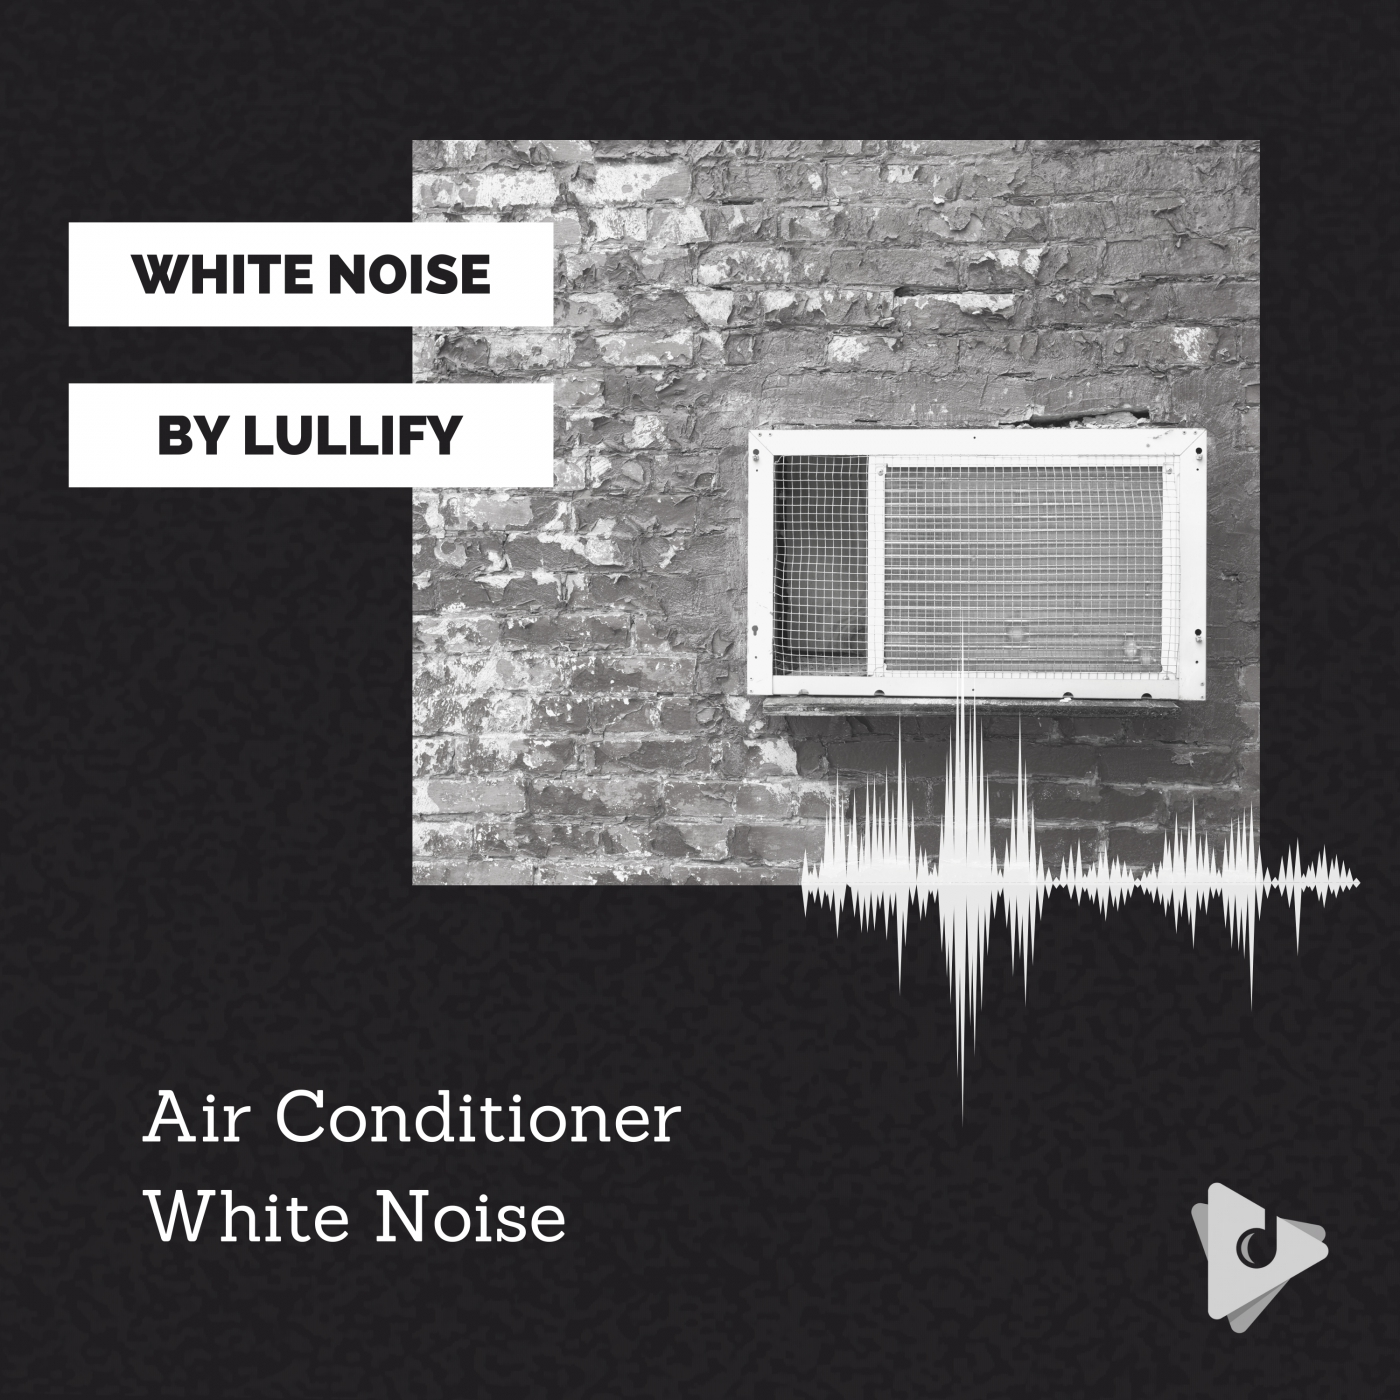 Air Conditioner White Noise